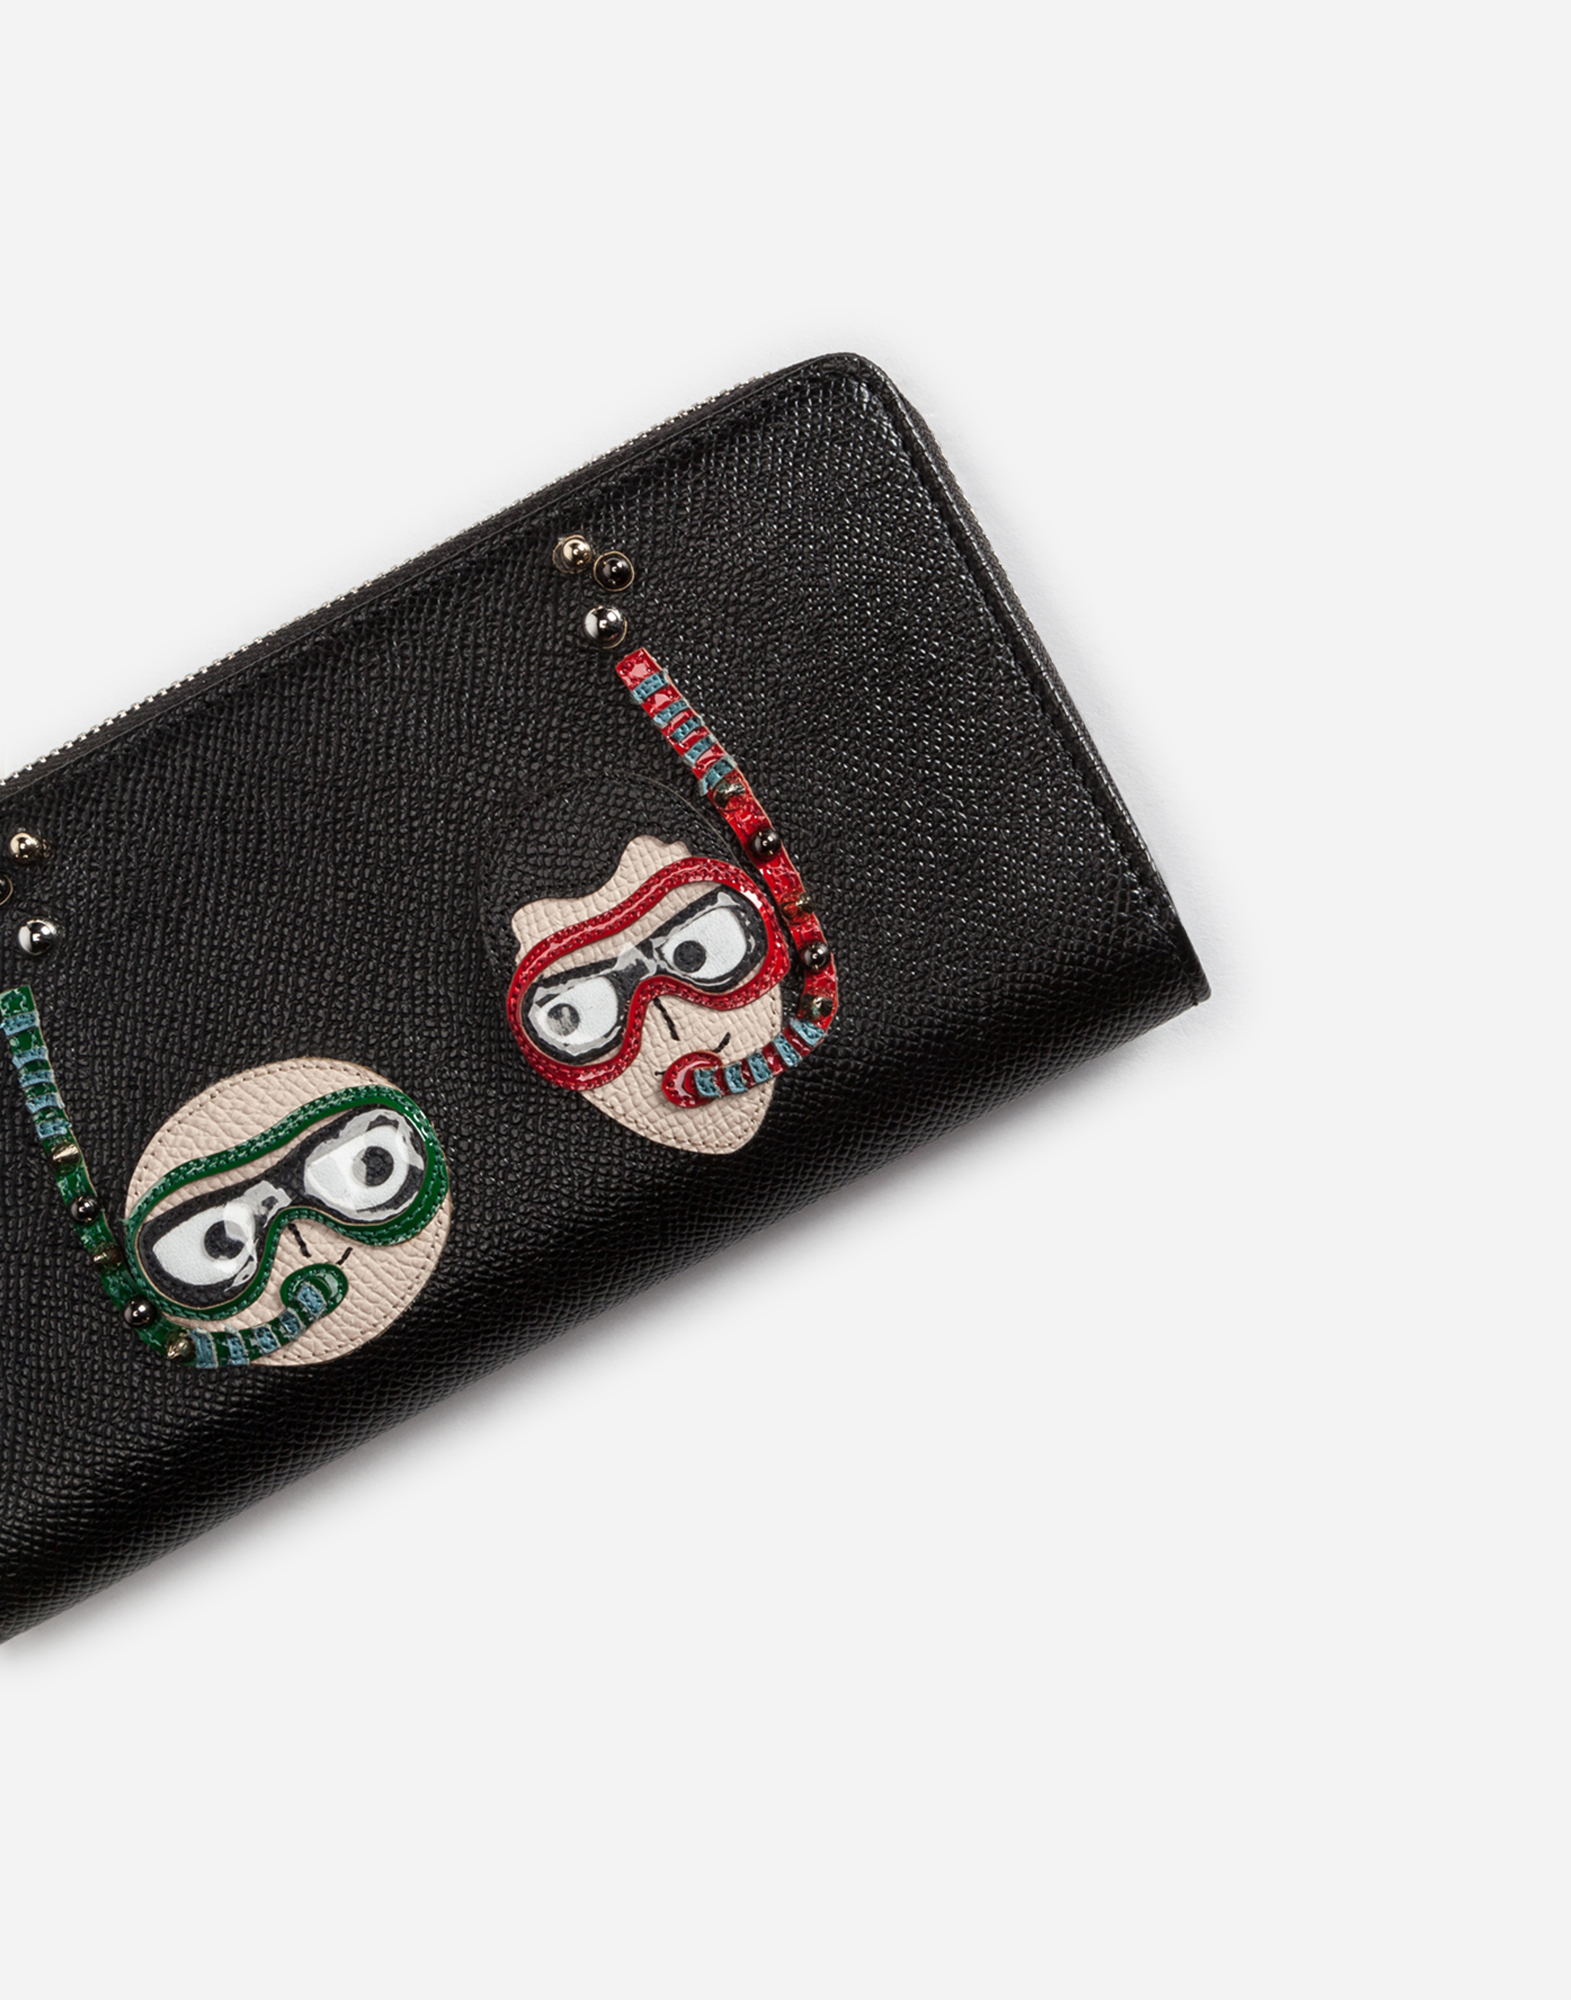 ZIP-AROUND DAUPHINE CALFSKIN WALLET WITH DIVER-STYLE PATCHES OF THE DESIGNERS